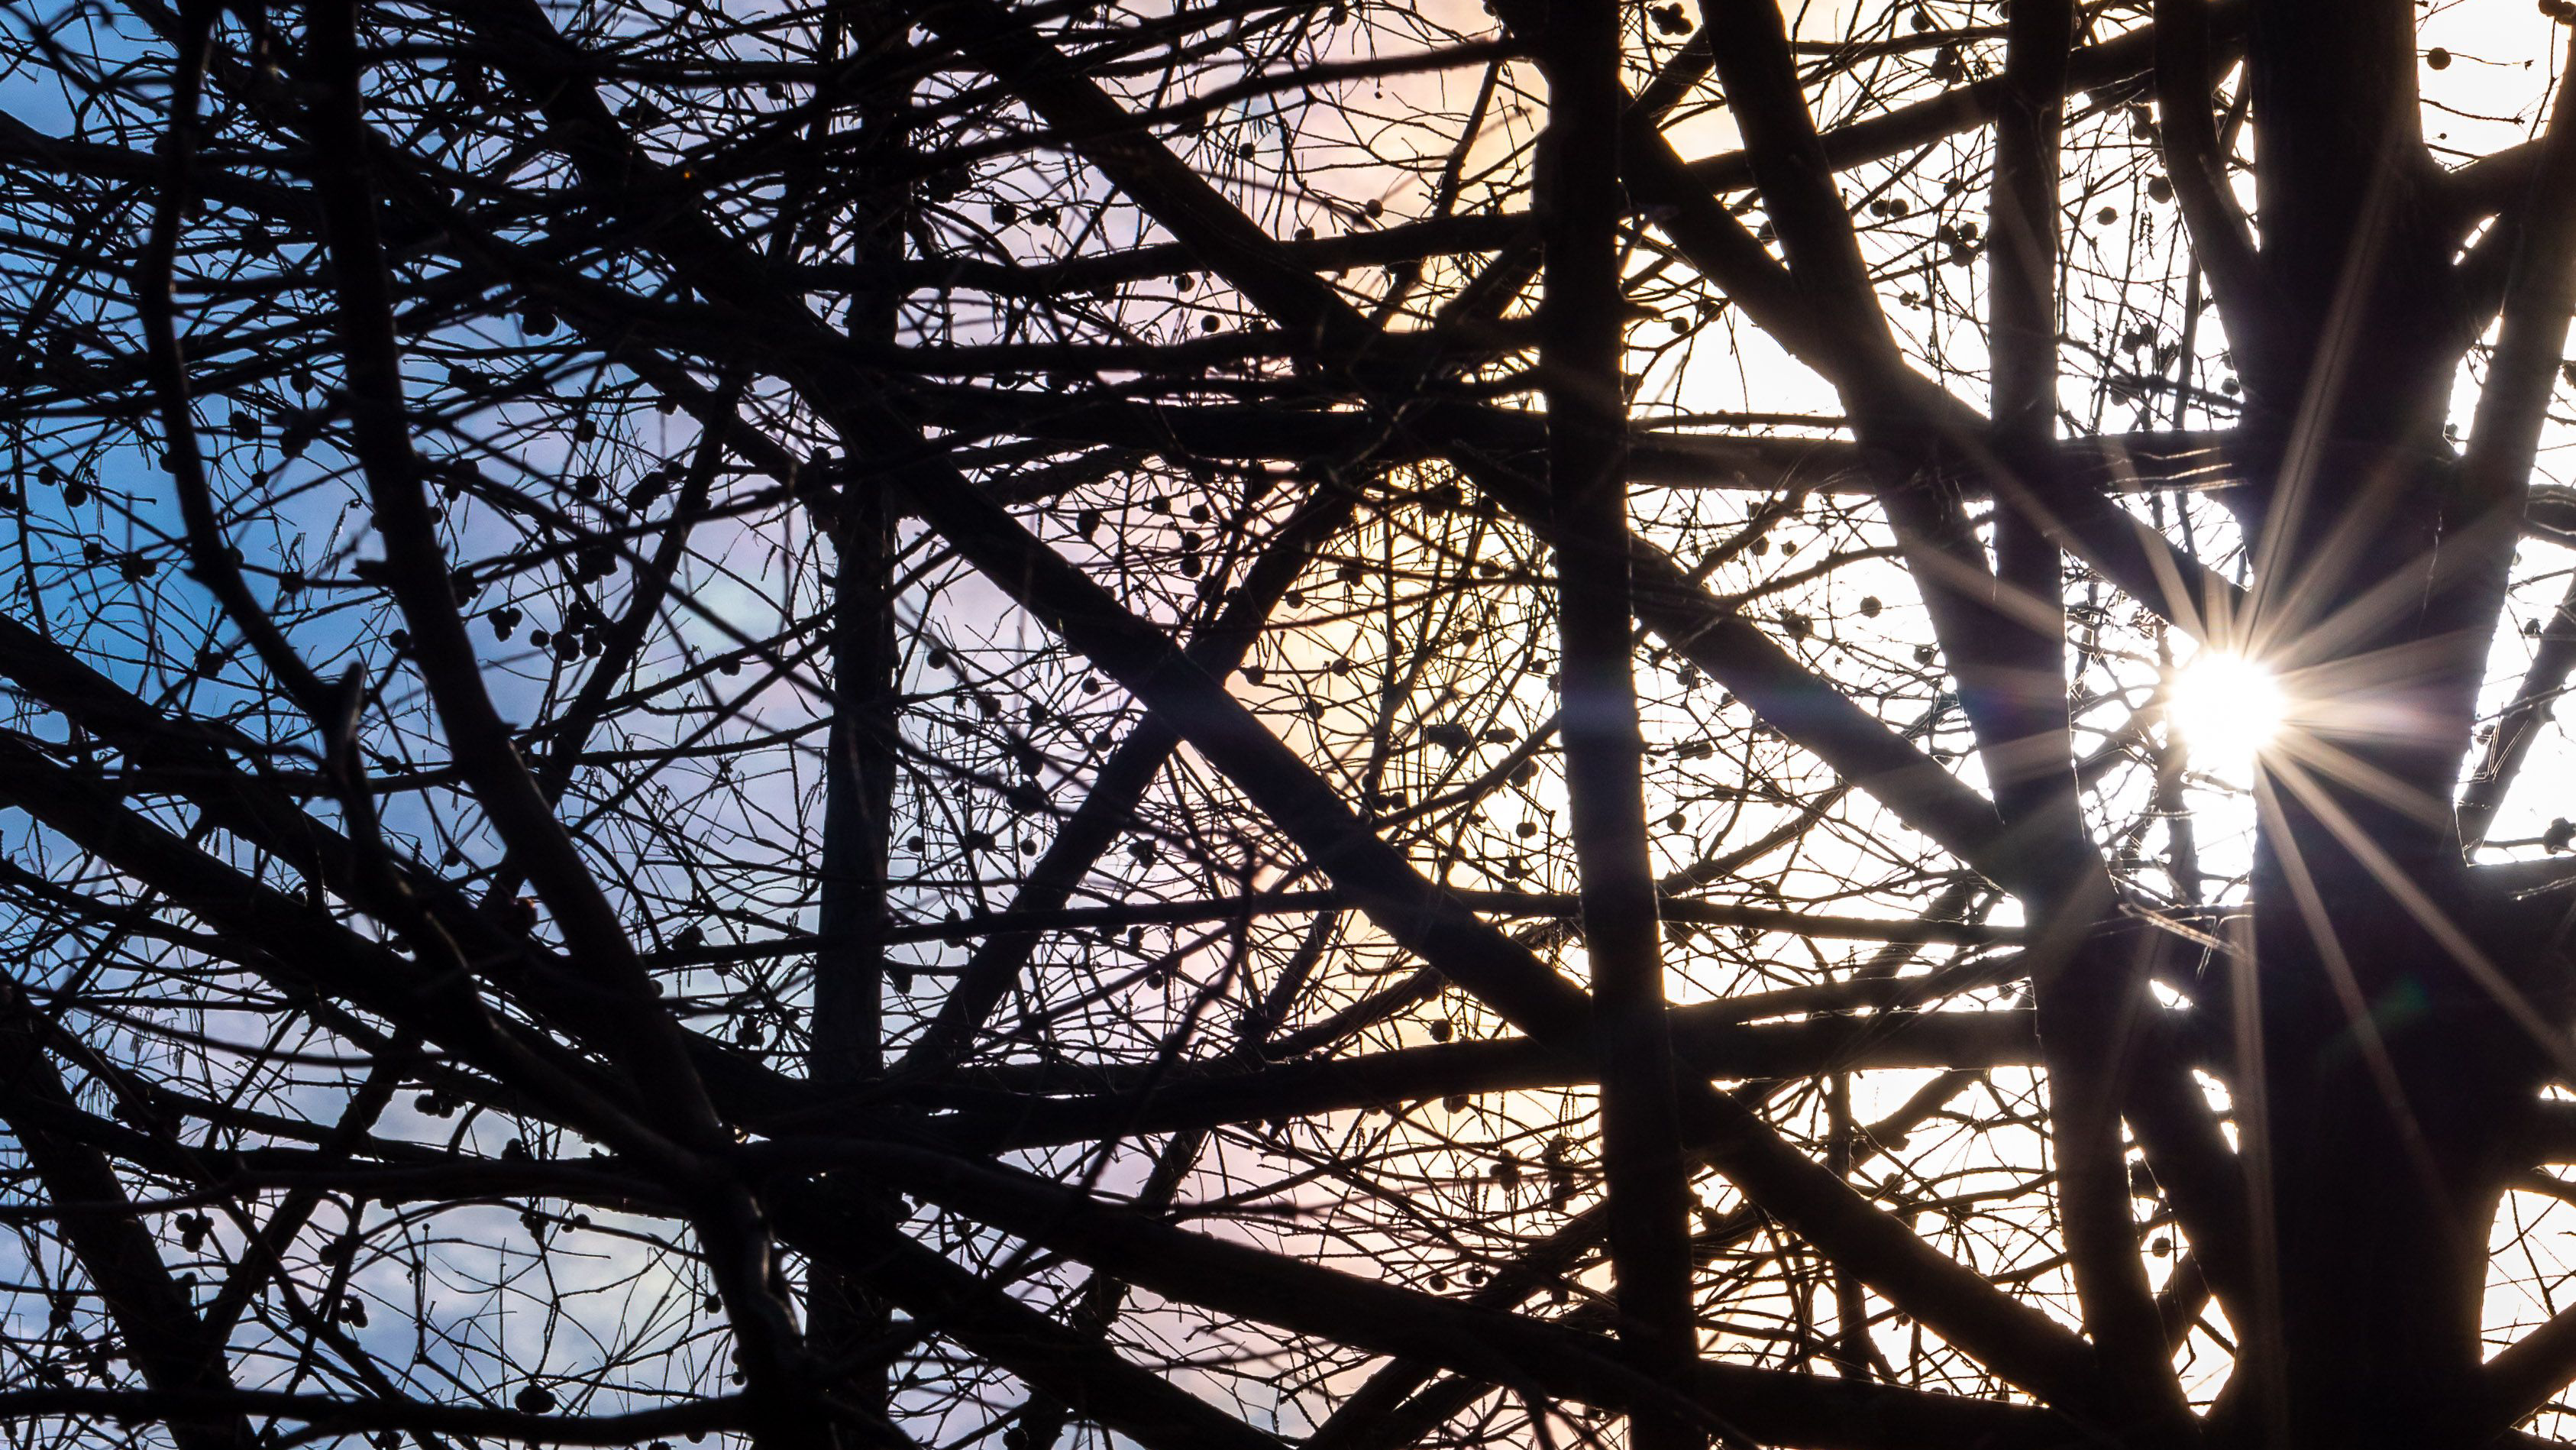 The sun shines through tree branches. Image by Tom Hennessy